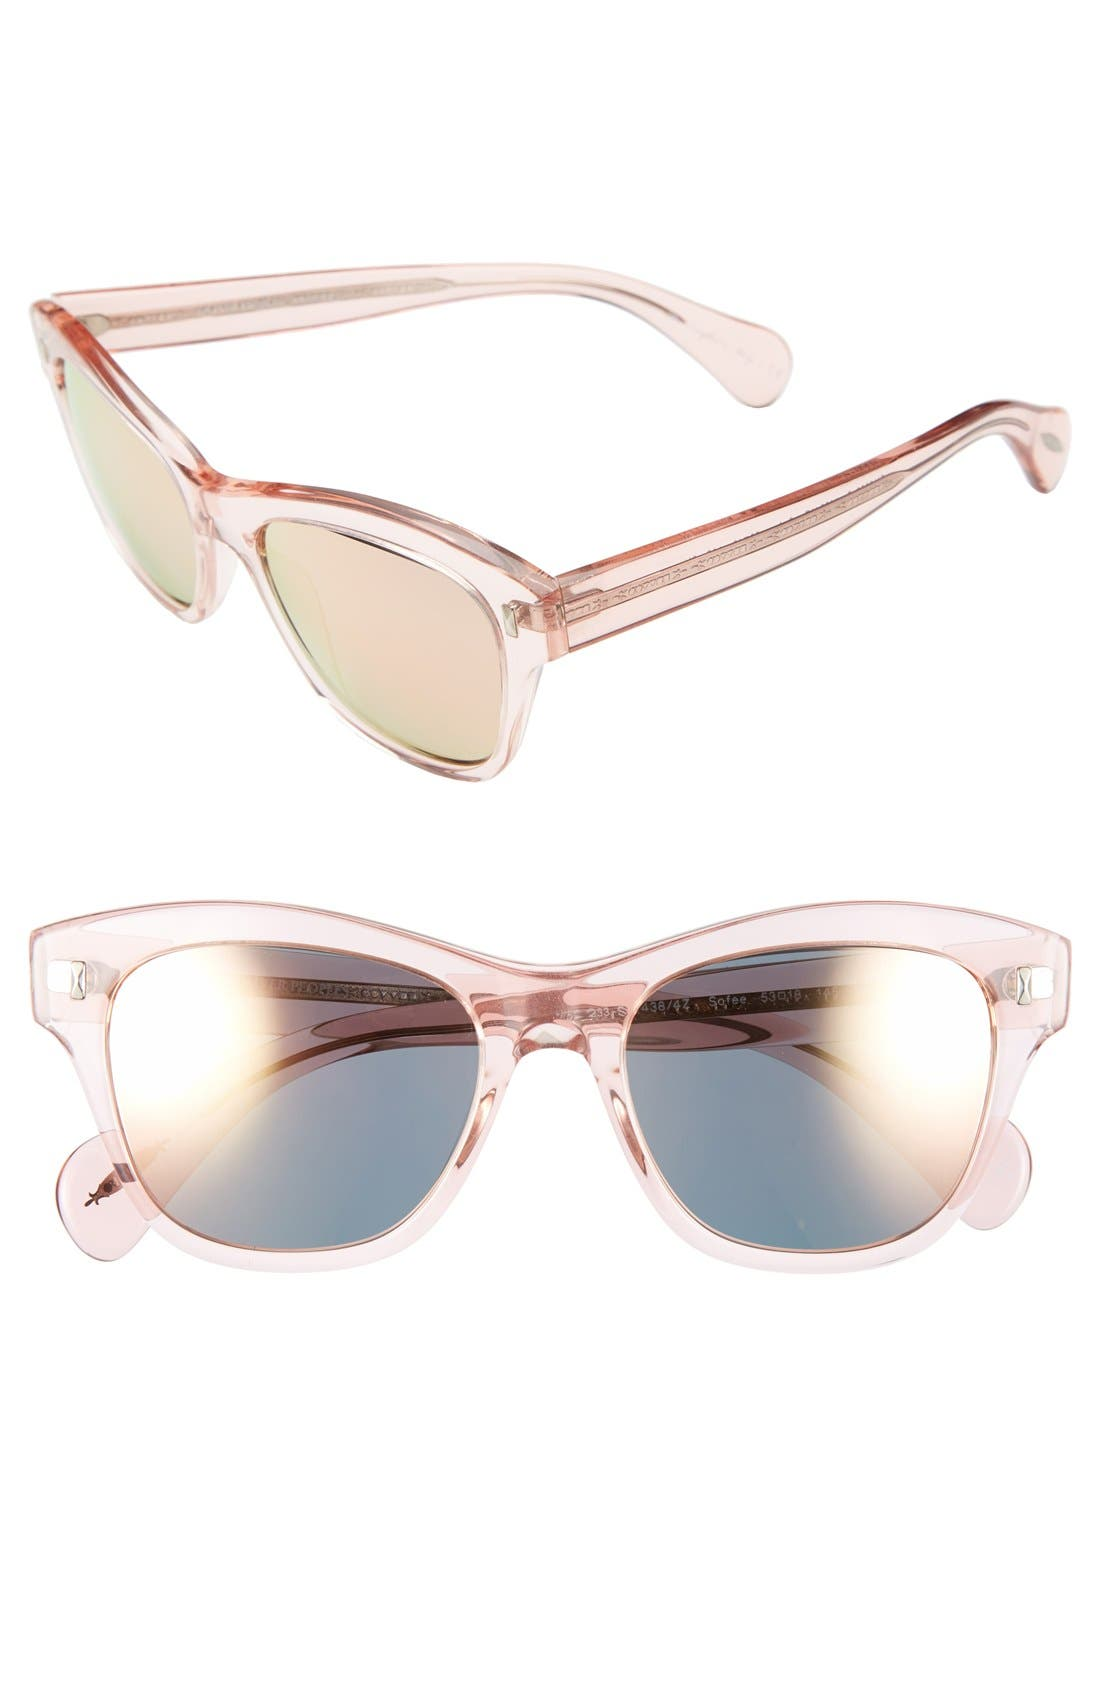 Main Image - Oliver Peoples 'Sofee' 53mm Retro Sunglasses (Nordstrom Exclusive)